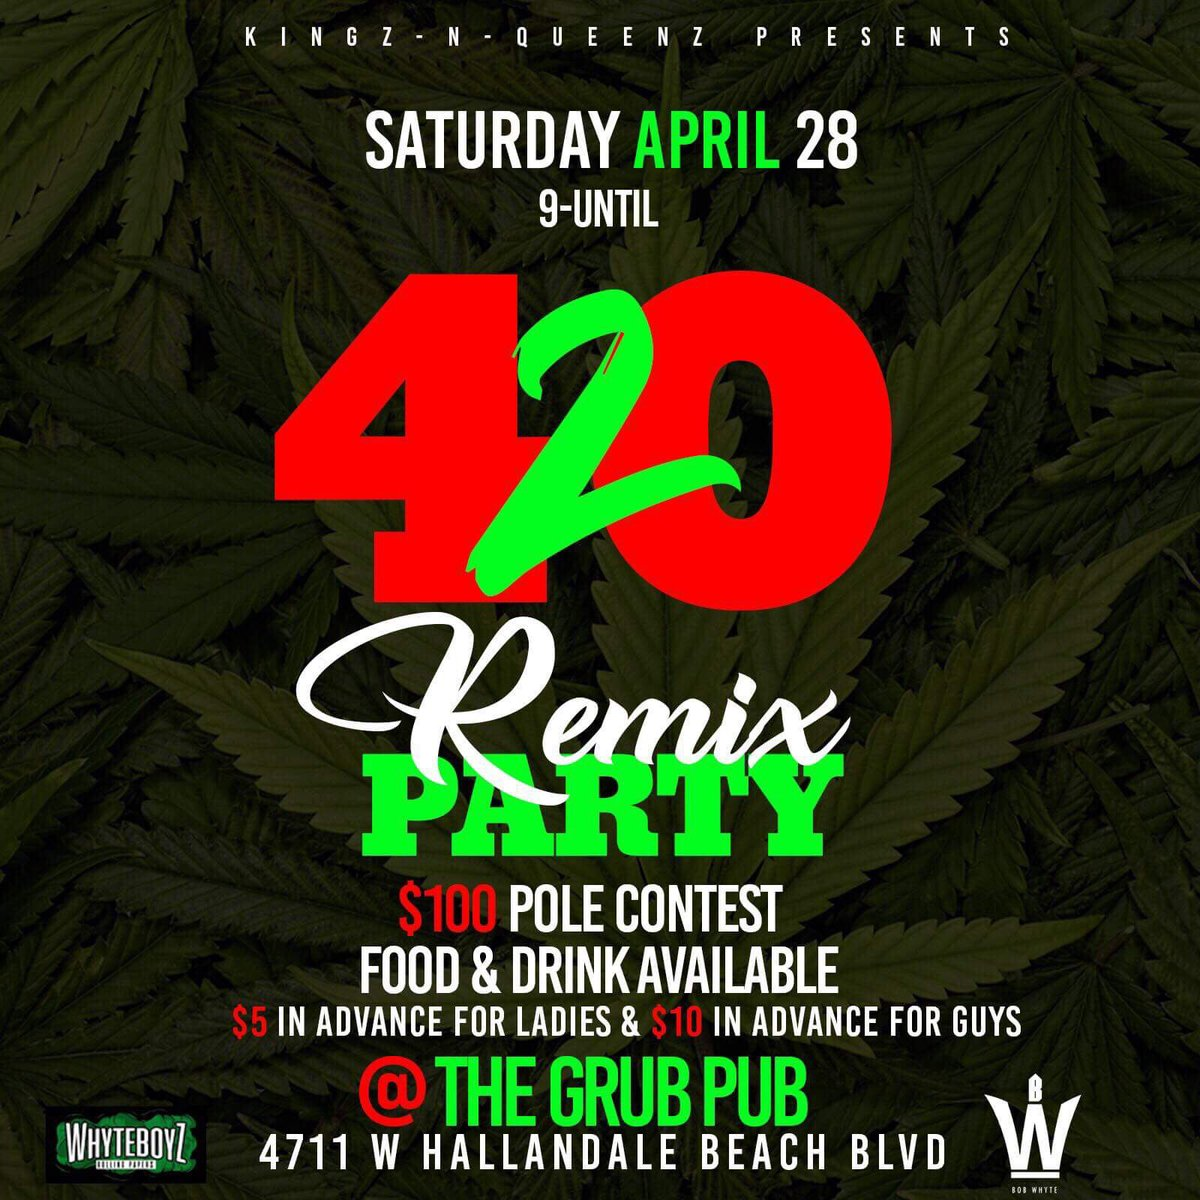 It's Going Down Saturday April 28th The Kingz n Queenz Group Presents The 1st Annual #420RemixBash Get Ya Tickets In Advance nd Come Turn Up With The Livest Of Live #420 #SmokeOne #ComePartyWithUs #ItsGoneBeLit 🔥🔥🔥🔥